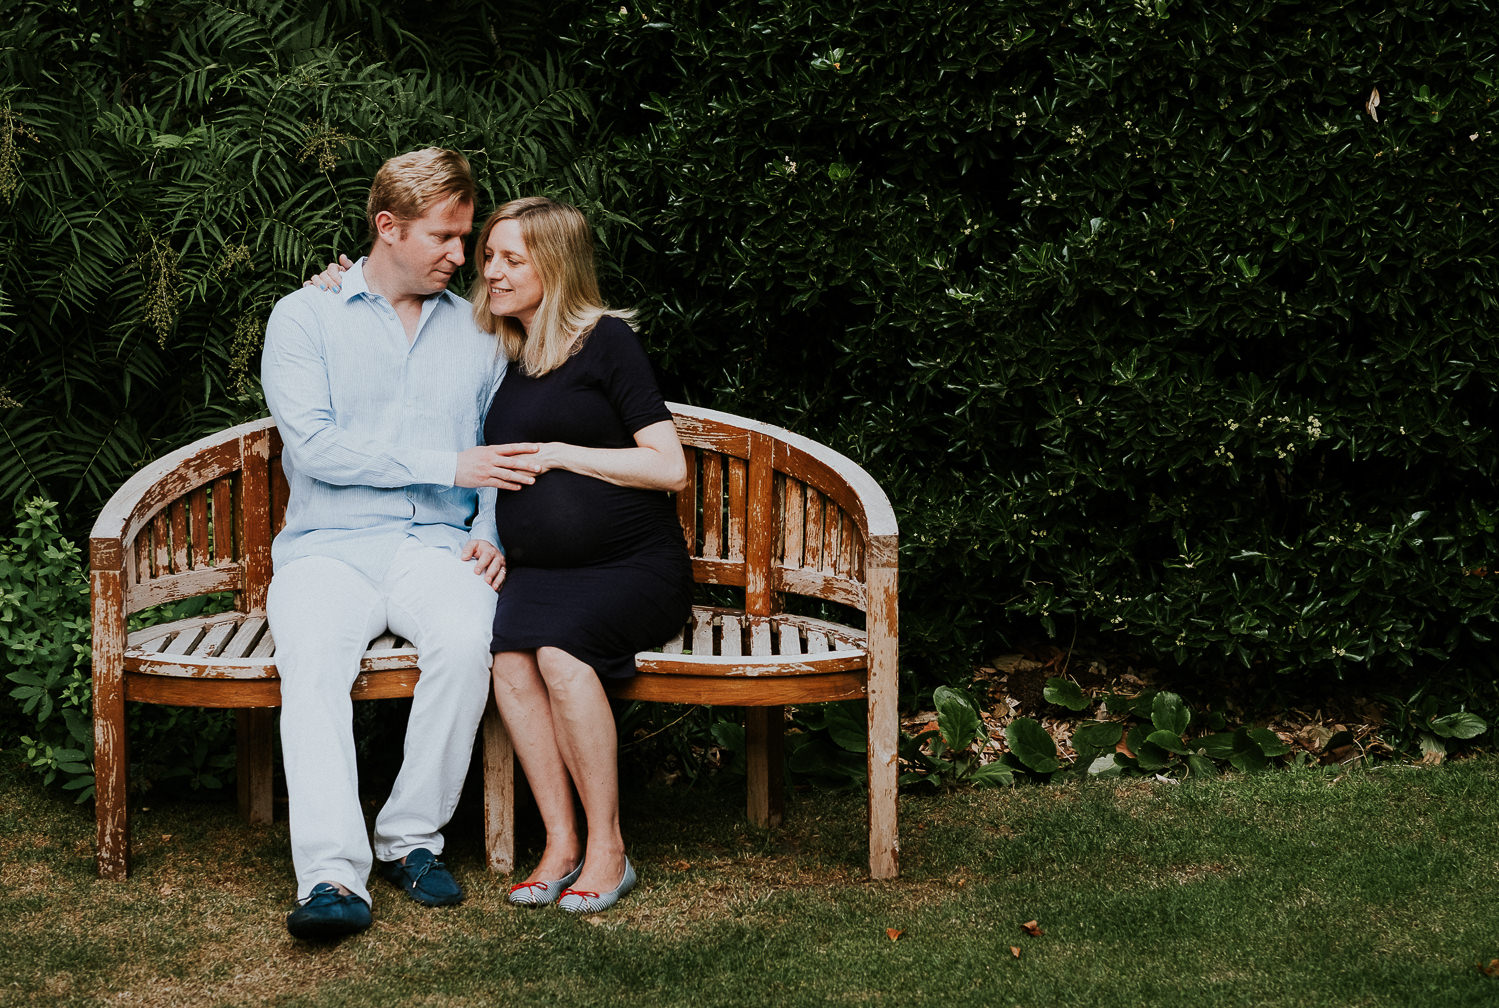 LONDON MATERNITY PHOTO SHOOT pregnant woman and husband sitting on bench